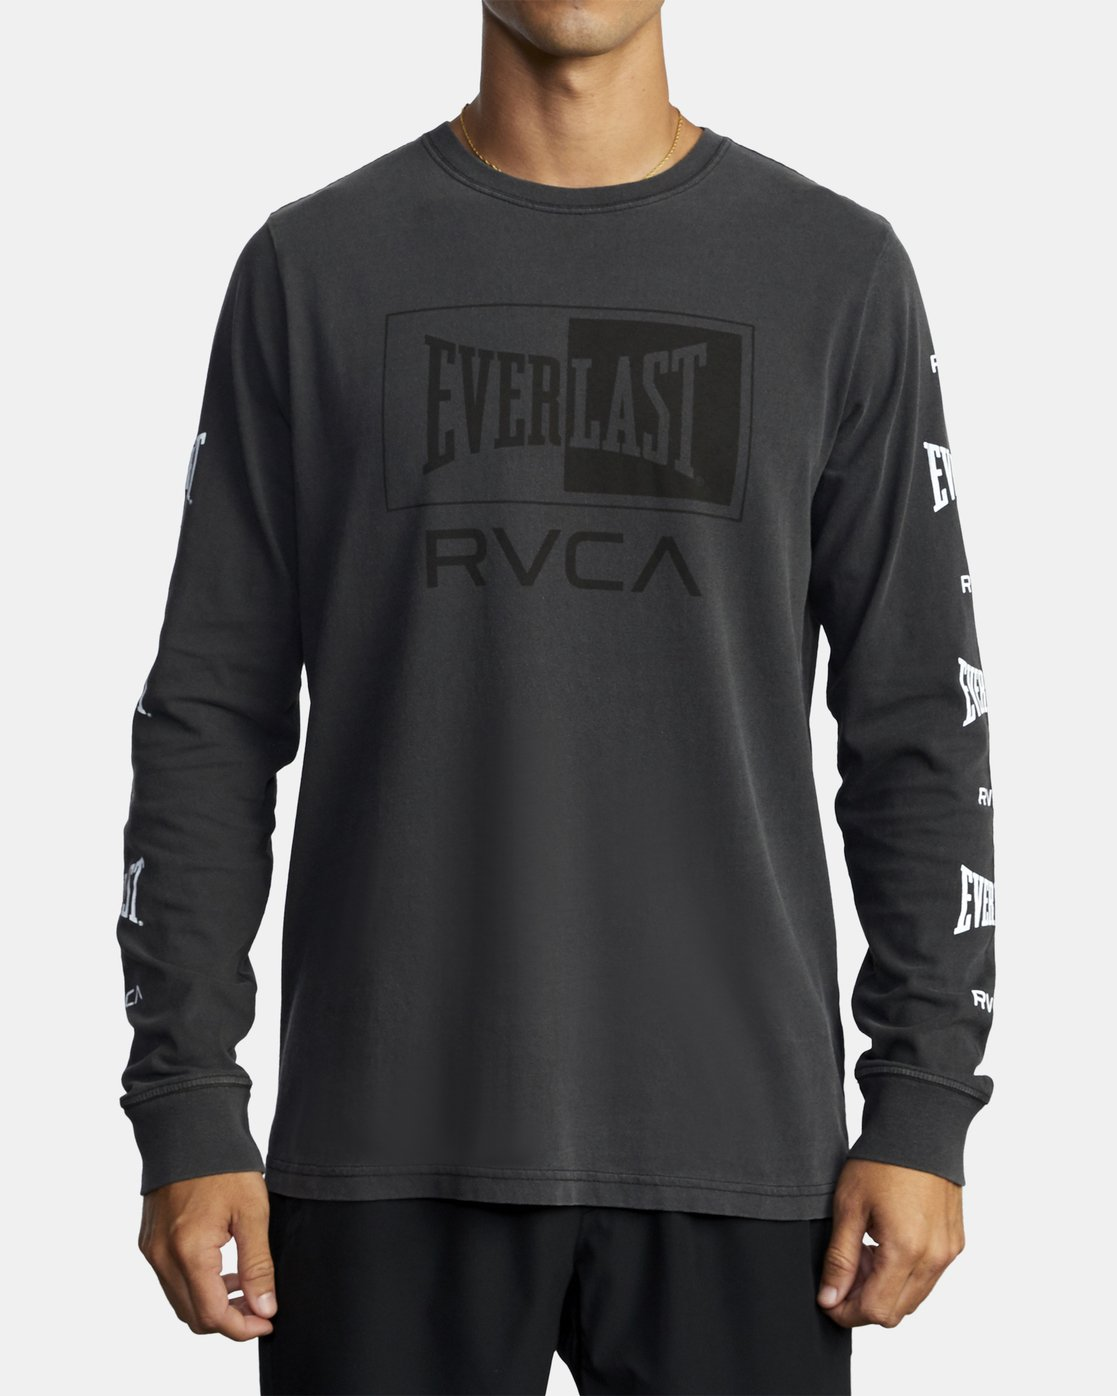 0 EVERLAST BOX LONG SLEEVE TEE Black R305099 RVCA